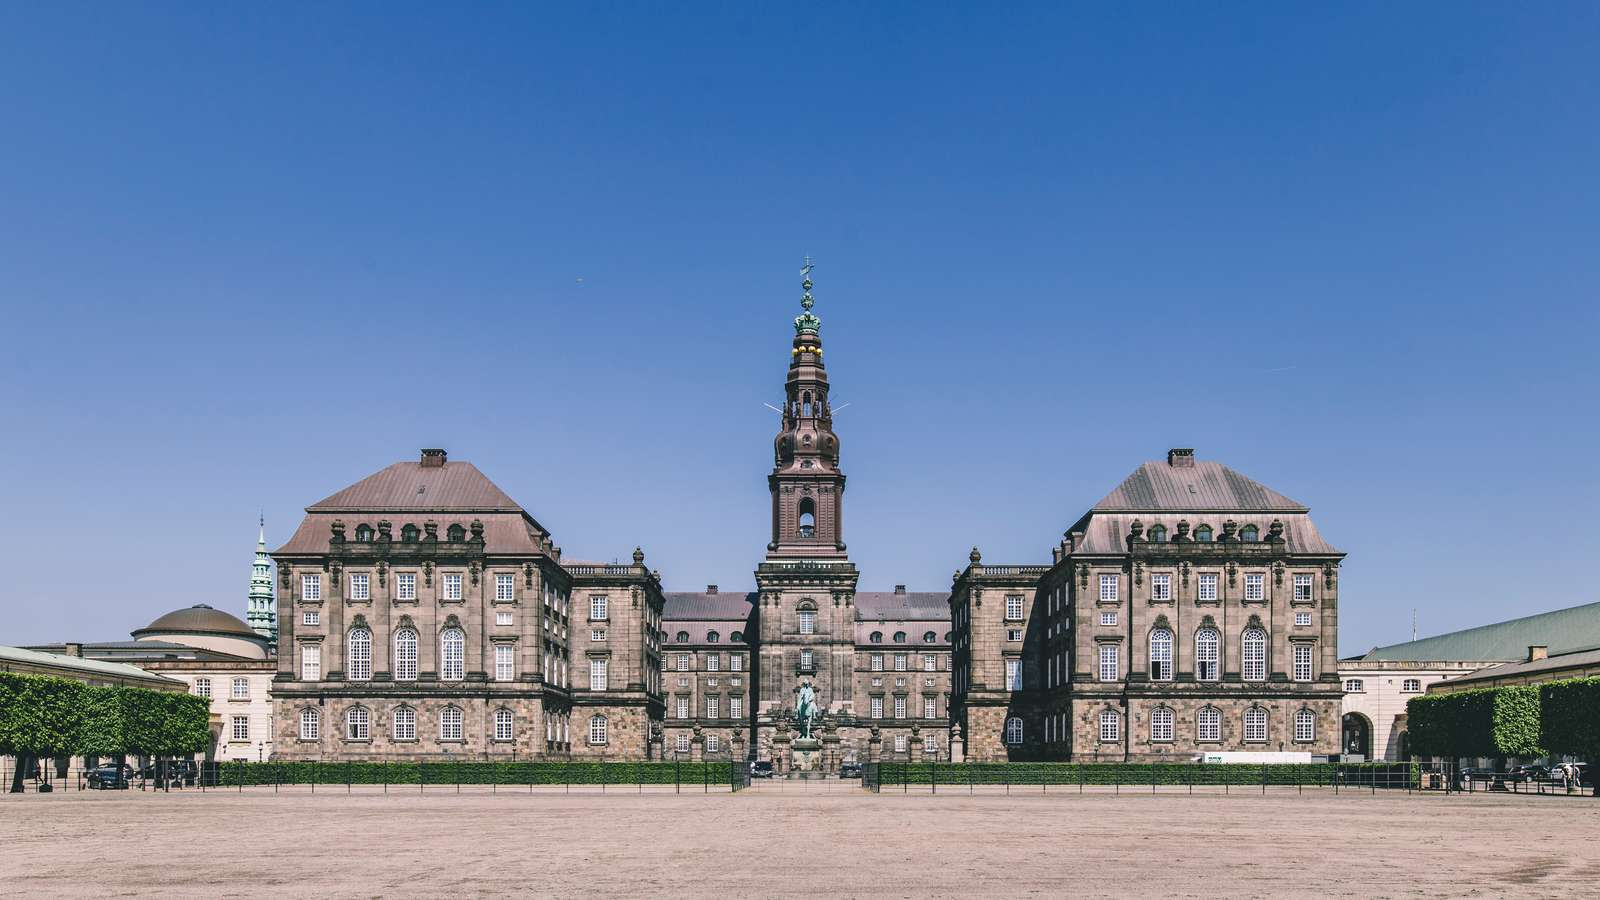 Christiansborg Palace Image Courtesy : Copenhagen Media Center Photo by : Martin Heiberg